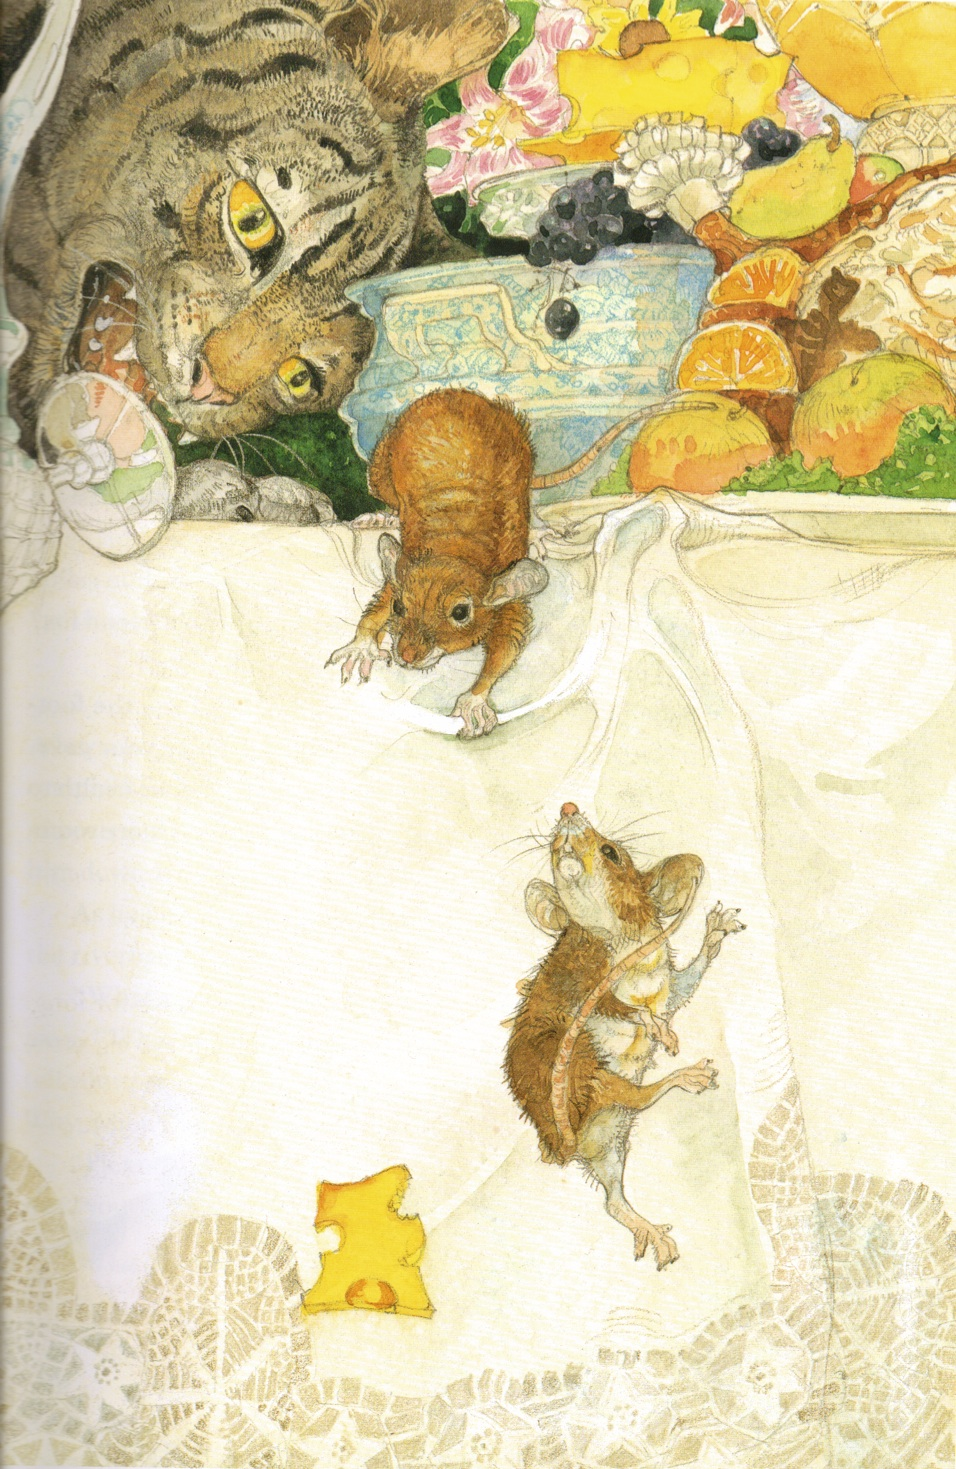 Models Monday Observing The Country Mouse Em Monroe Town And Jerry Pinkney Aesops Fables